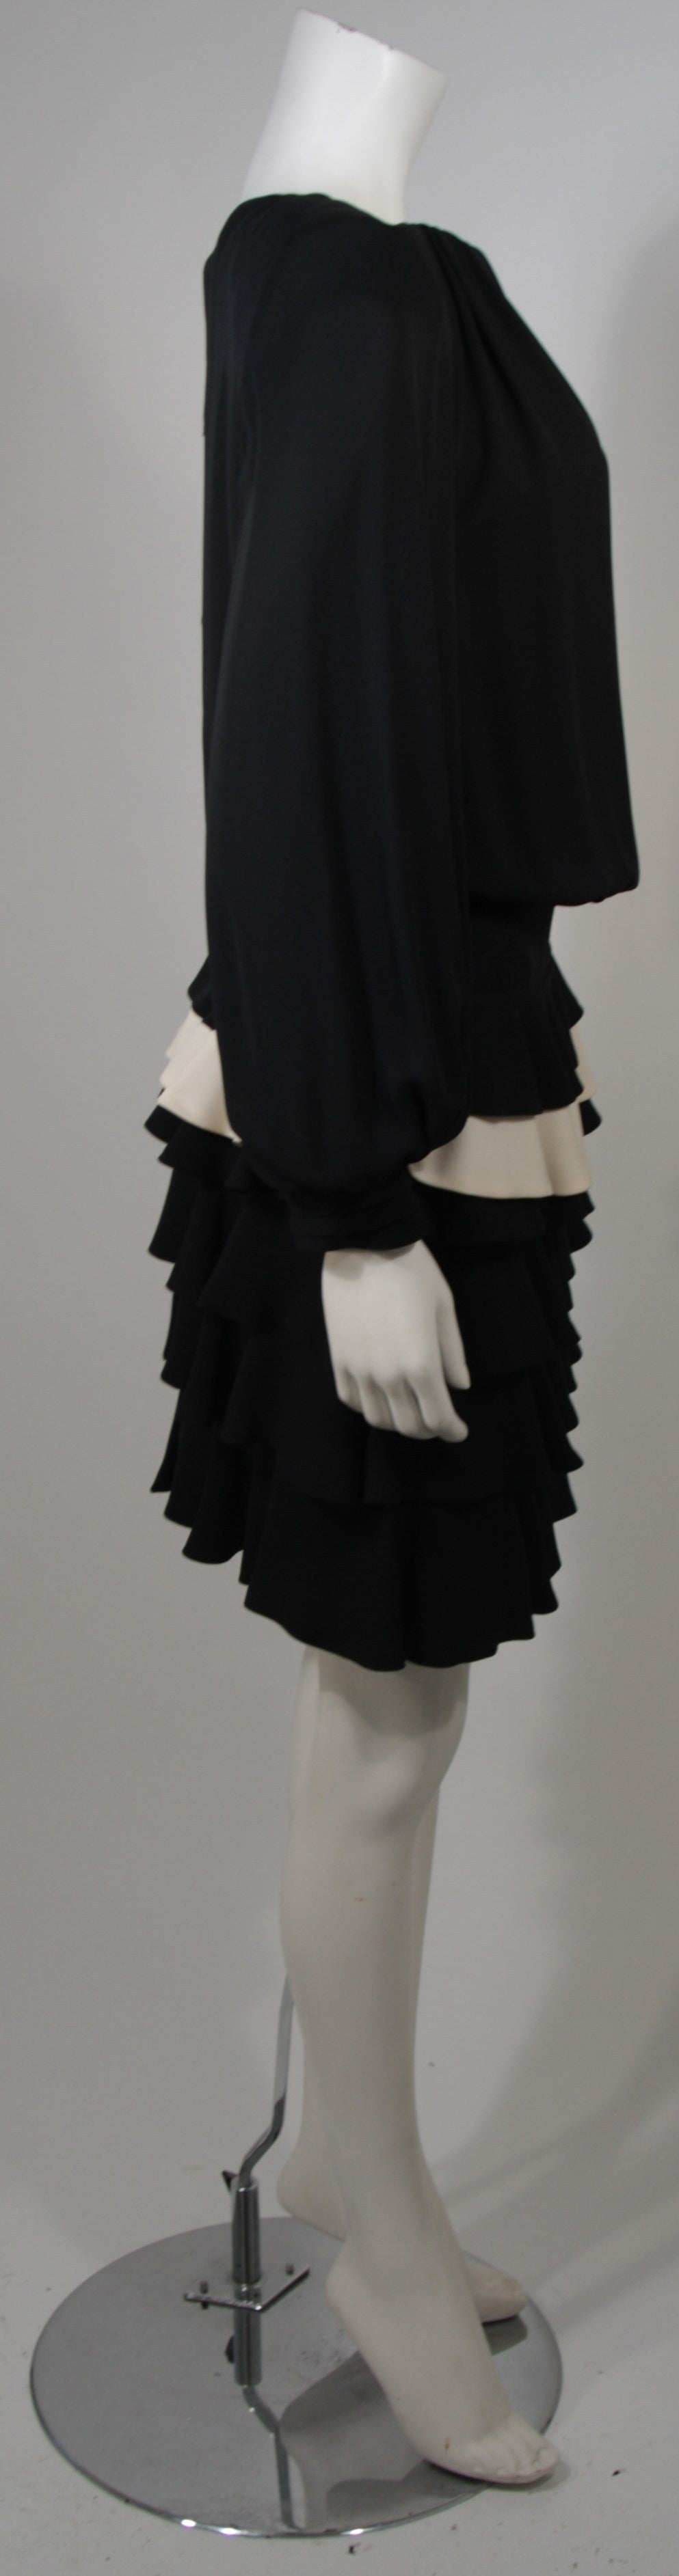 Galanos Black and Cream Ruffled Cocktail Dress with Dramatic Neckline Size 2 6